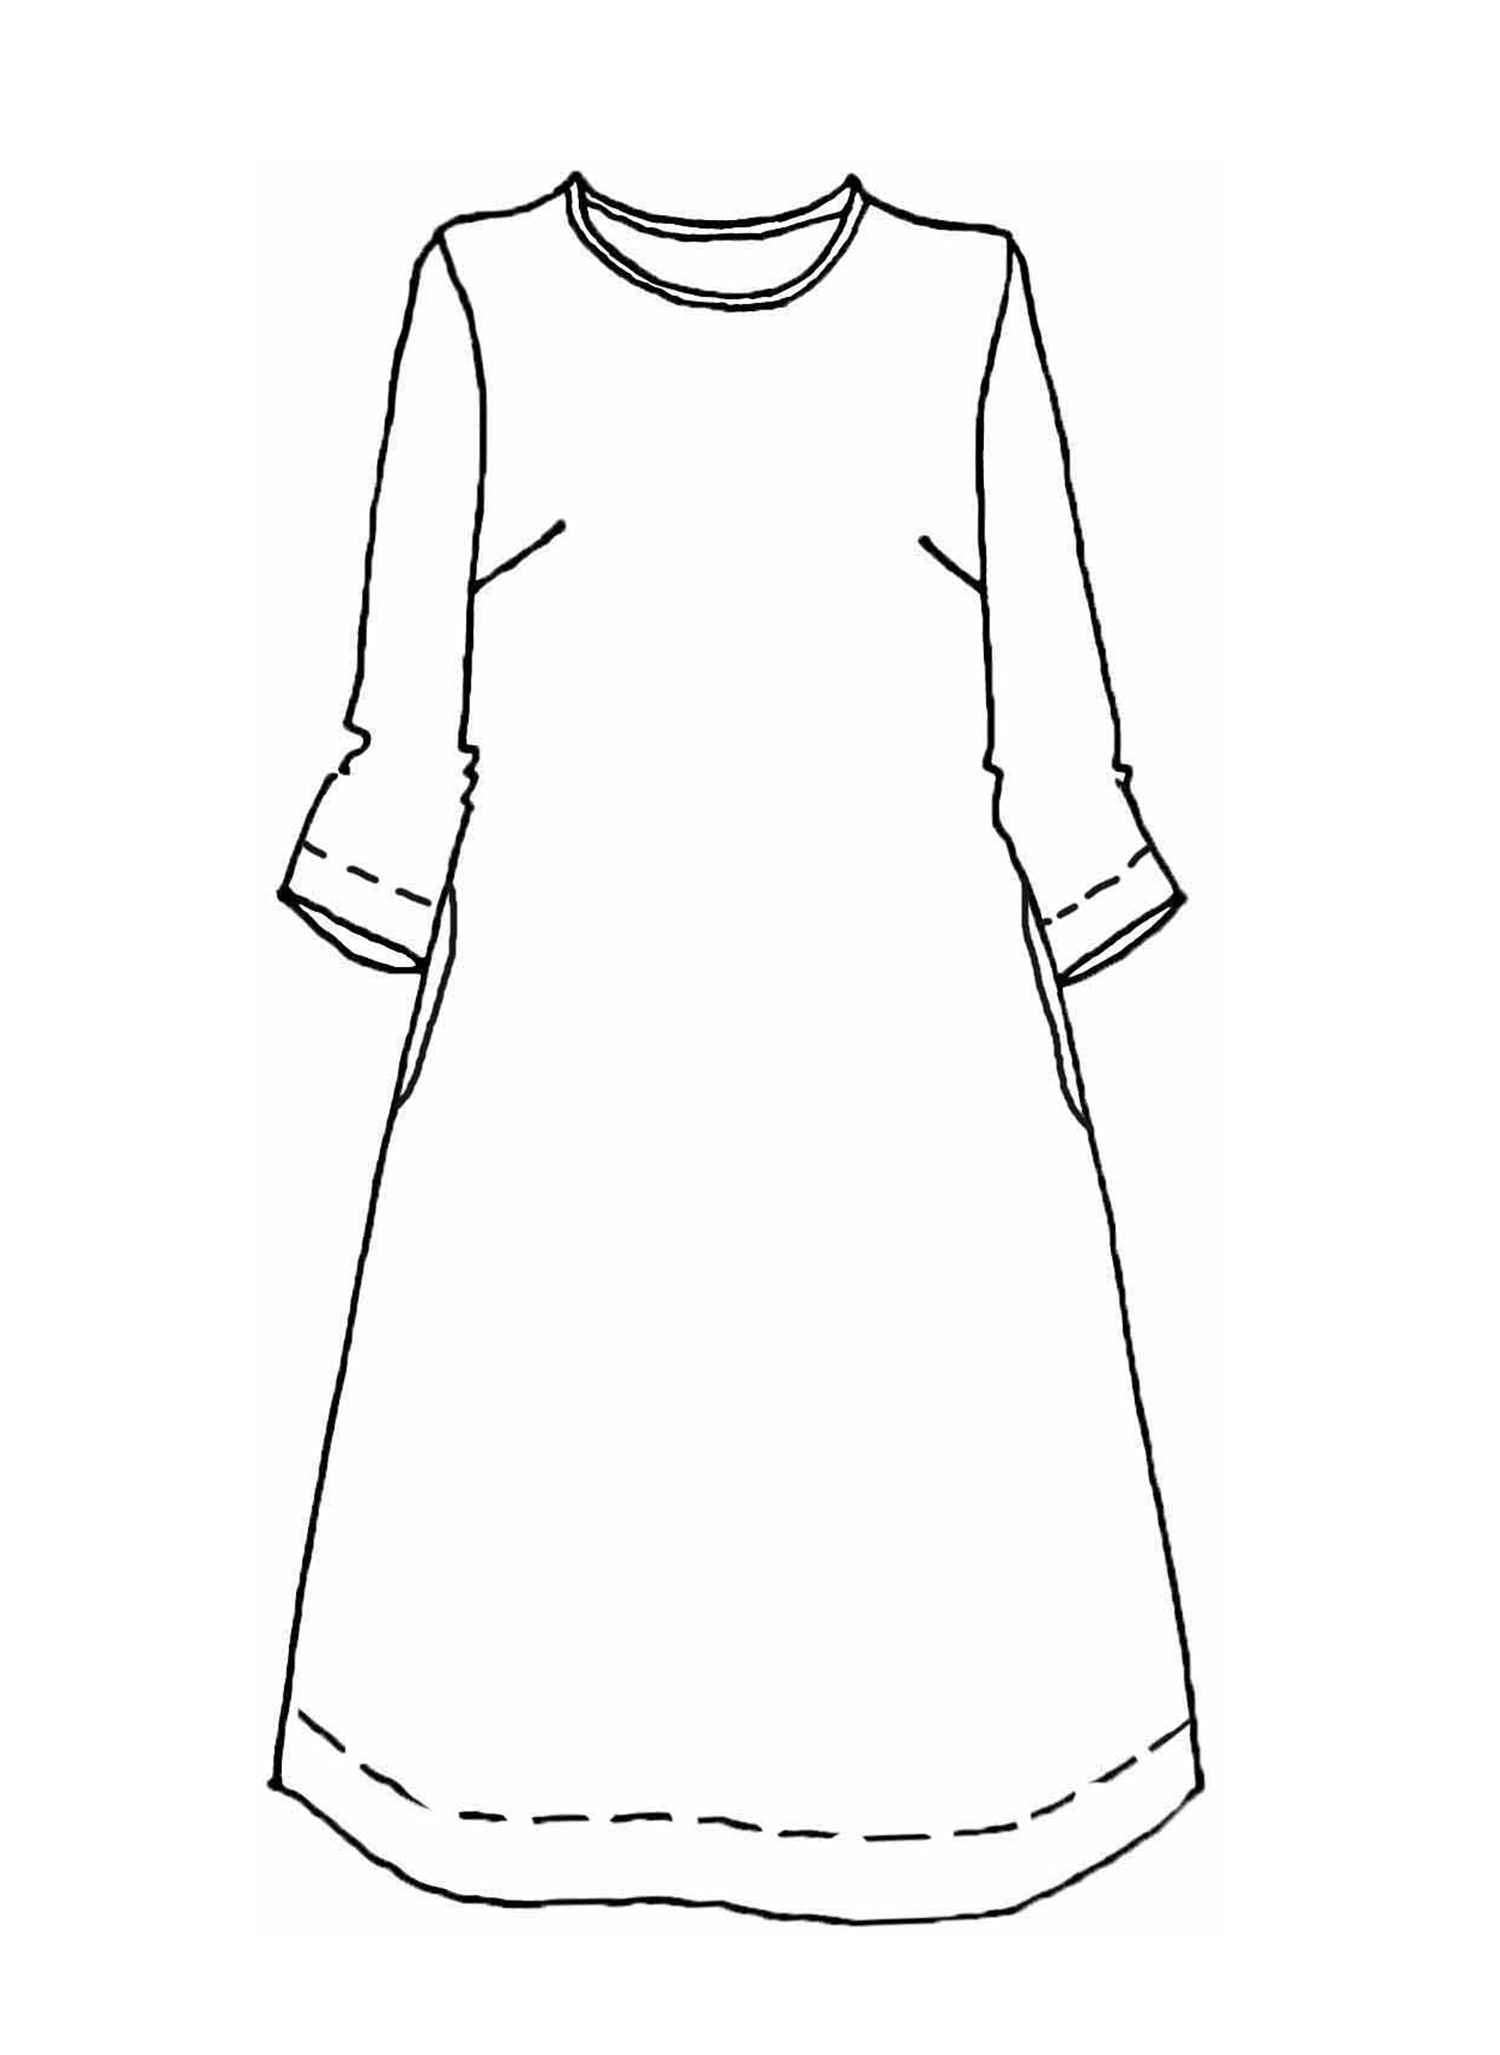 Muse Dress sketch image